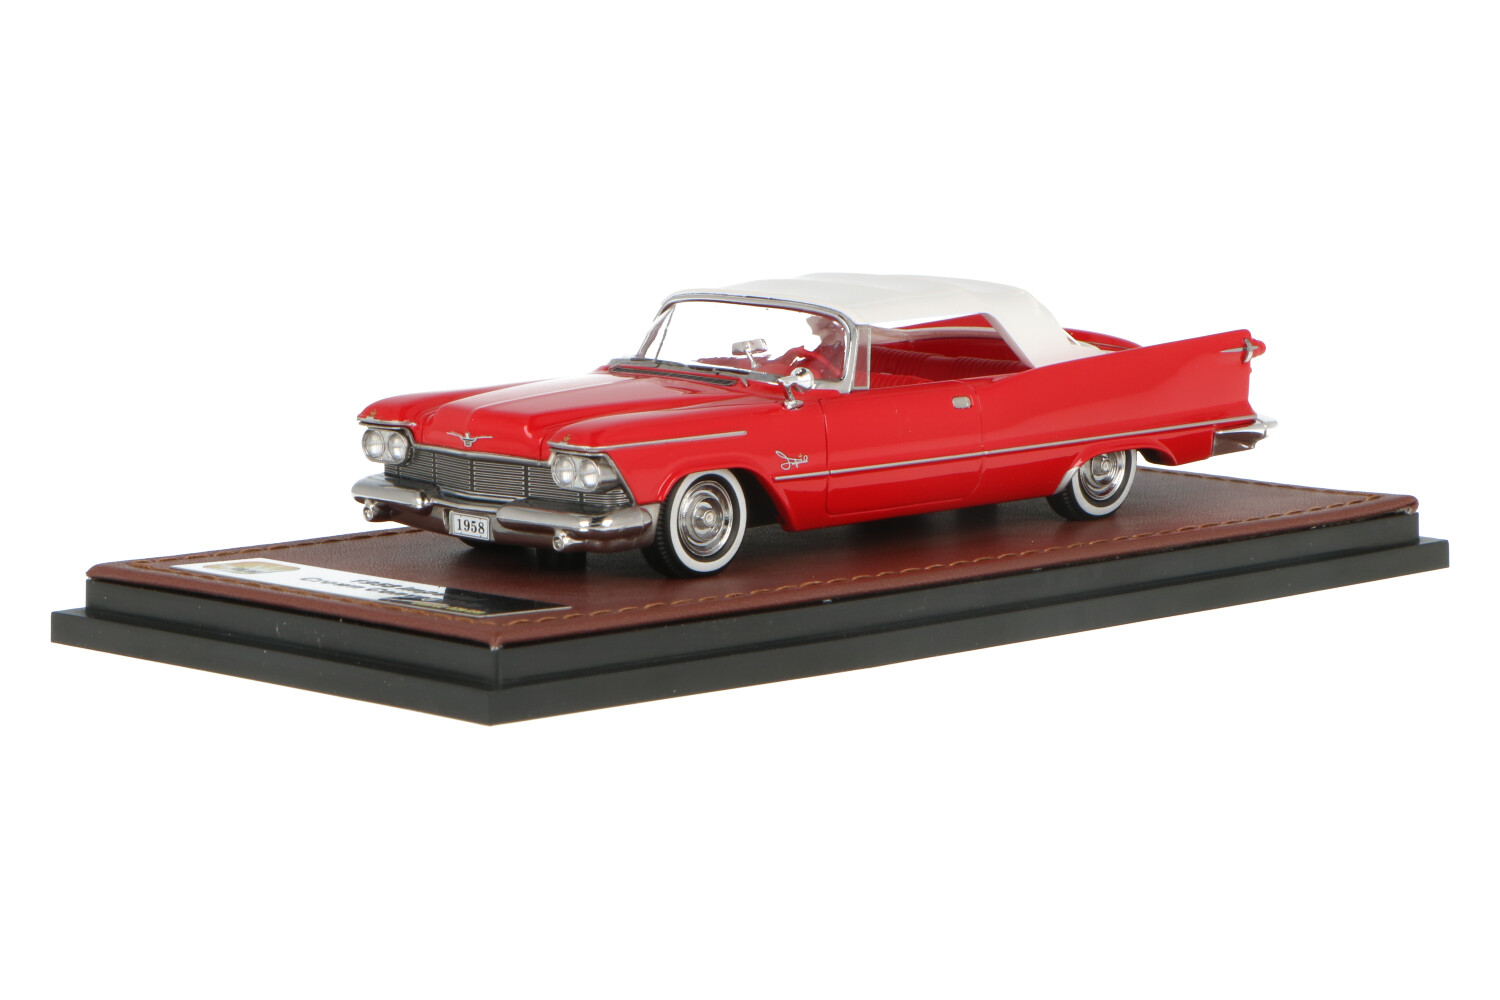 Chrysler Imperial Crown Convertible Closed roof - Modelauto schaal 1:43